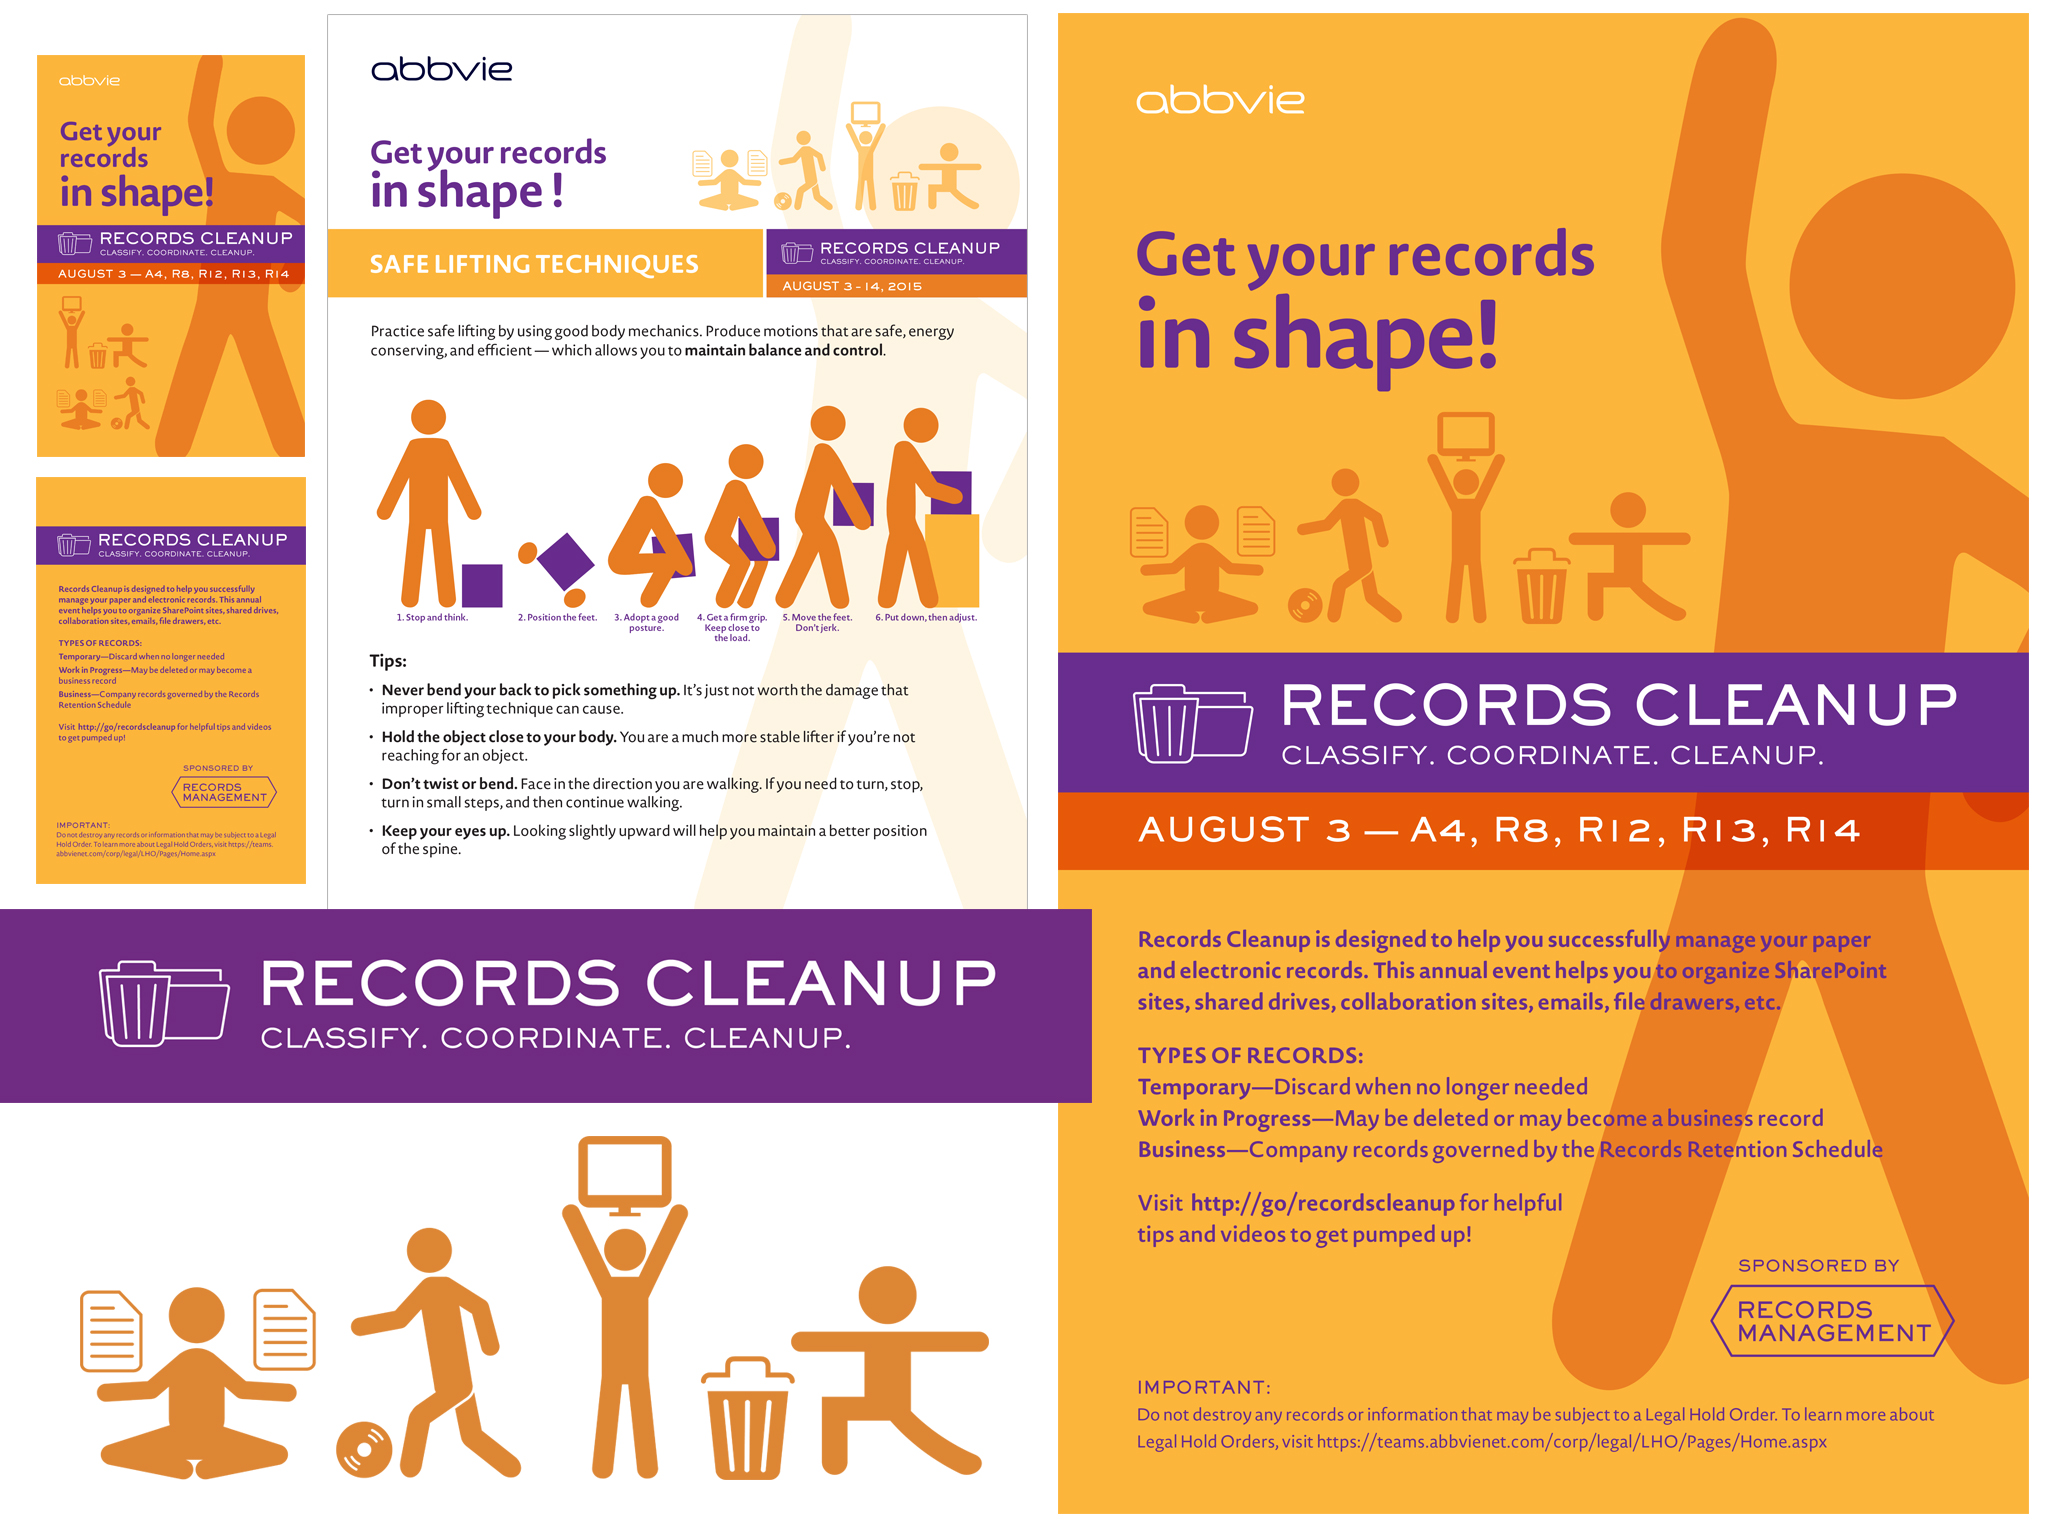 ab_recordscleanup_group